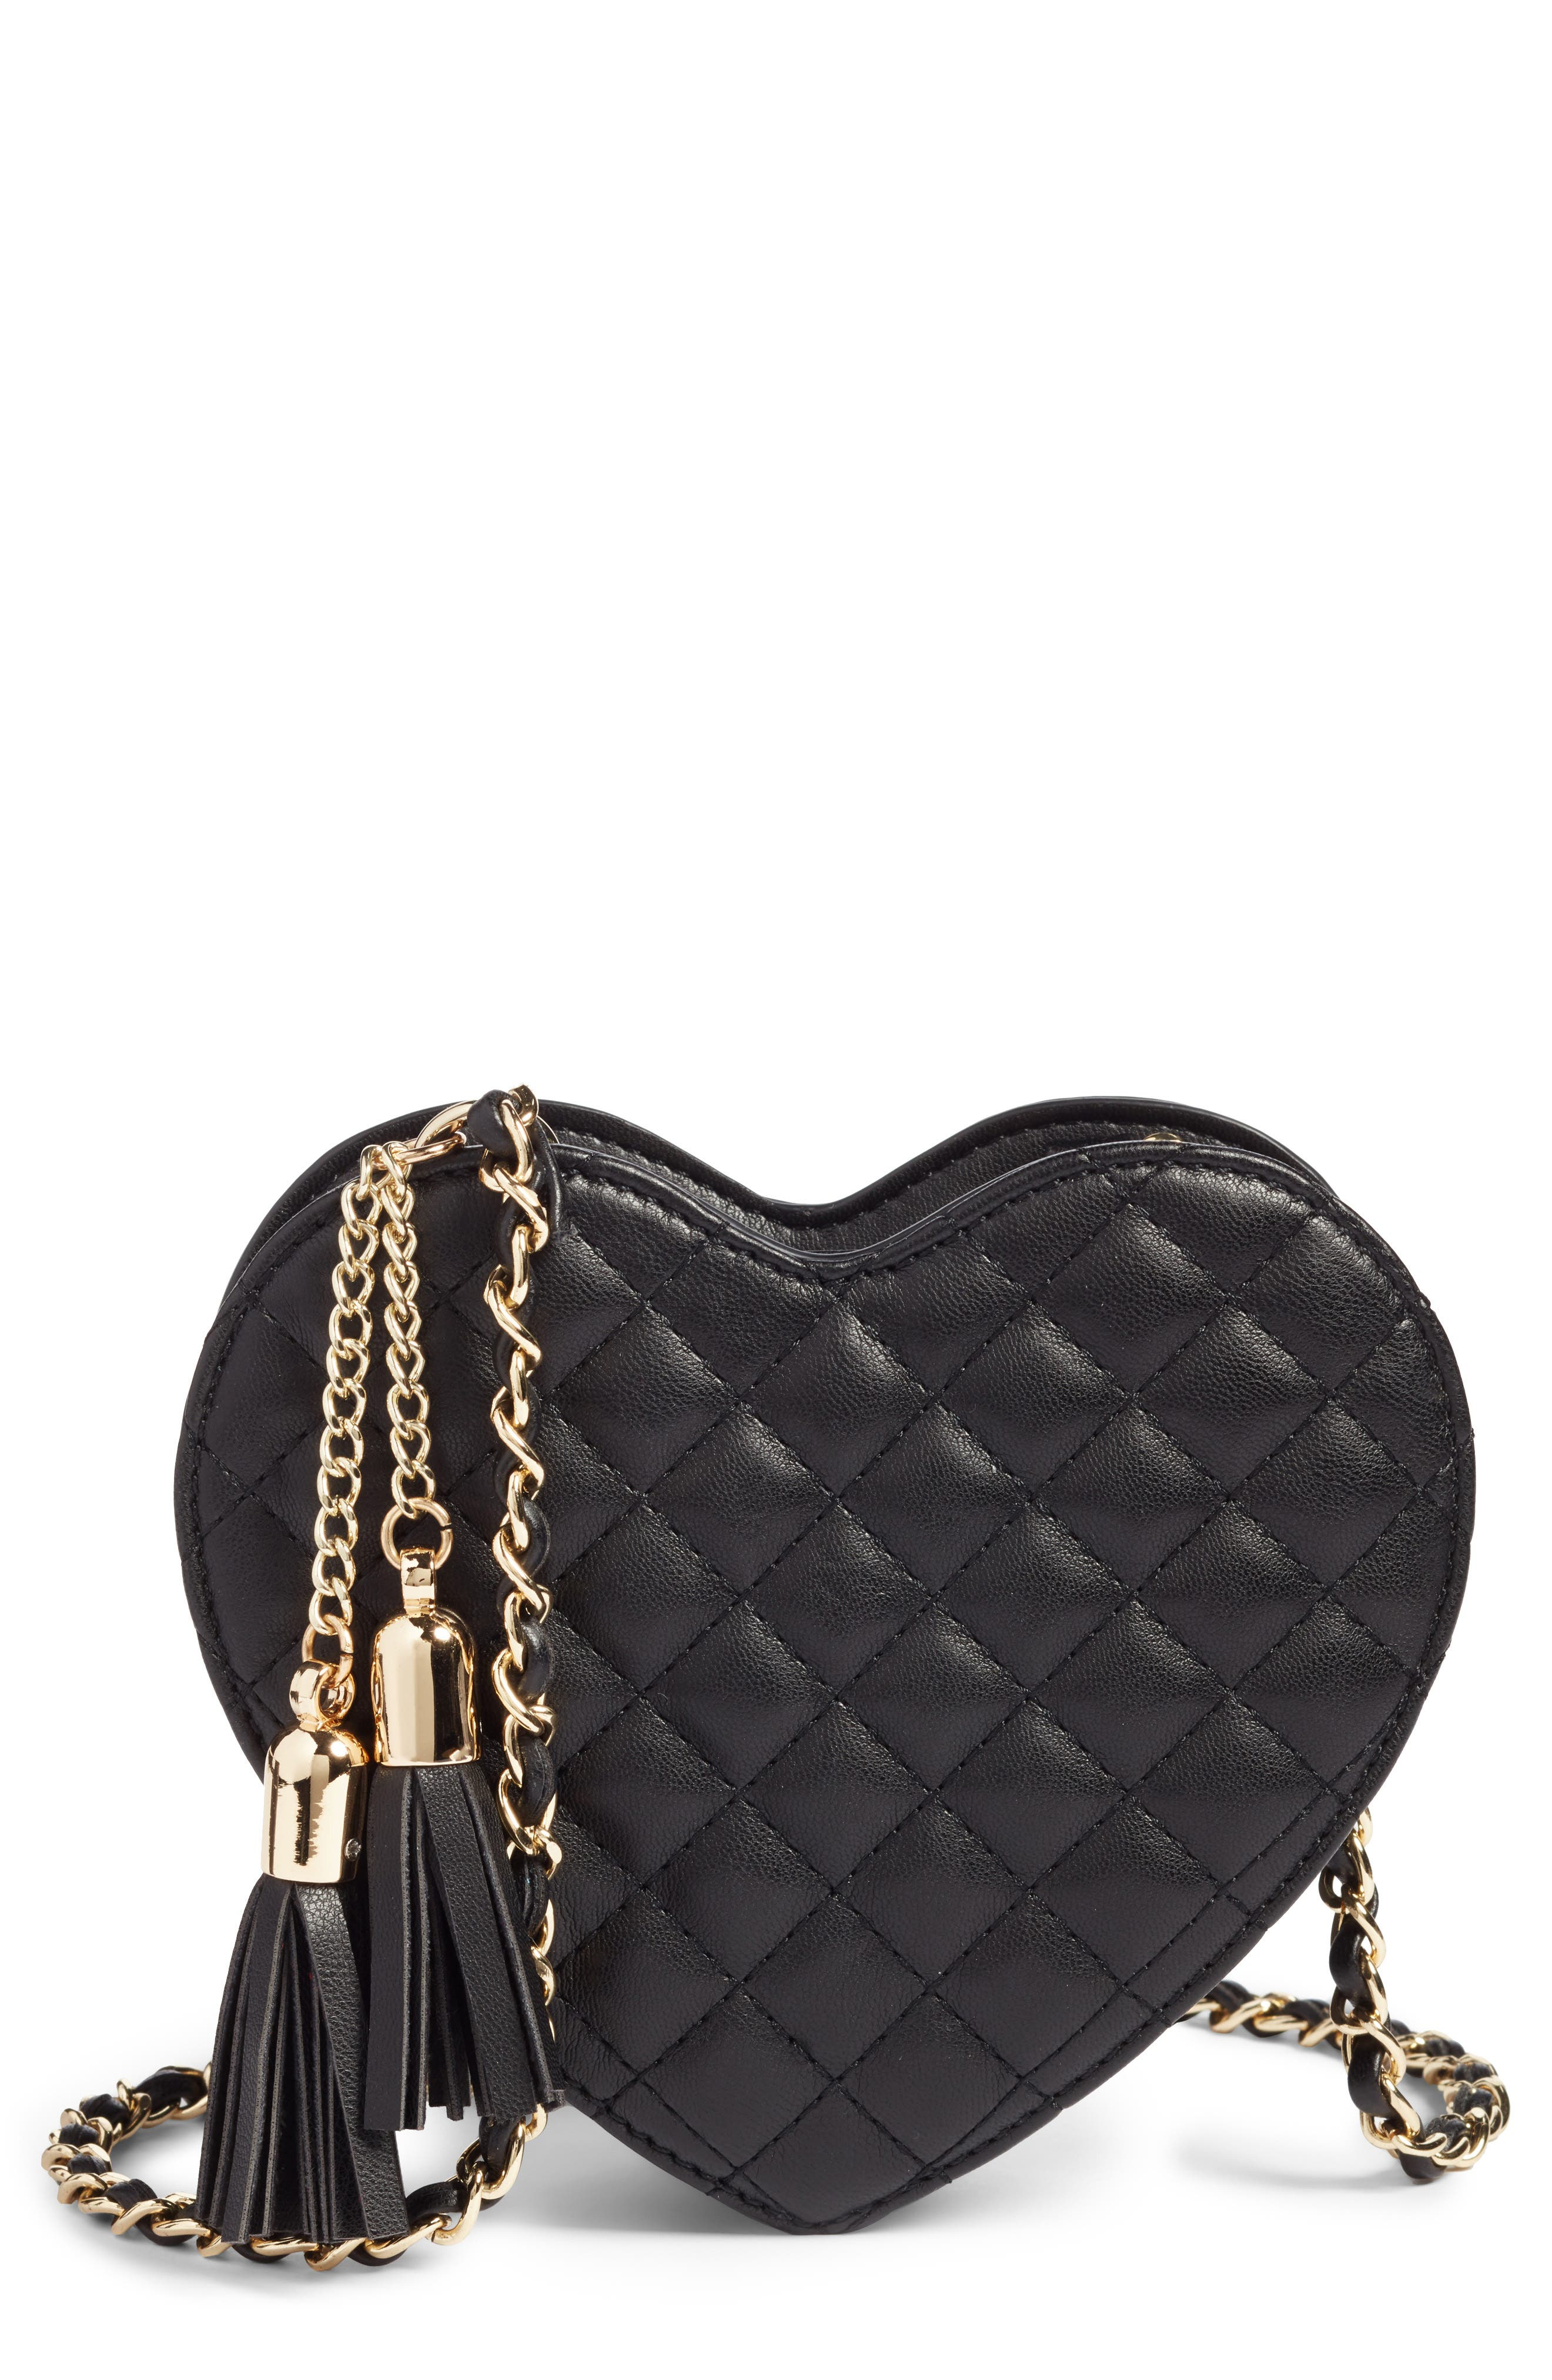 Mali + Lili Quilted Heart Faux Leather Crossbody Bag